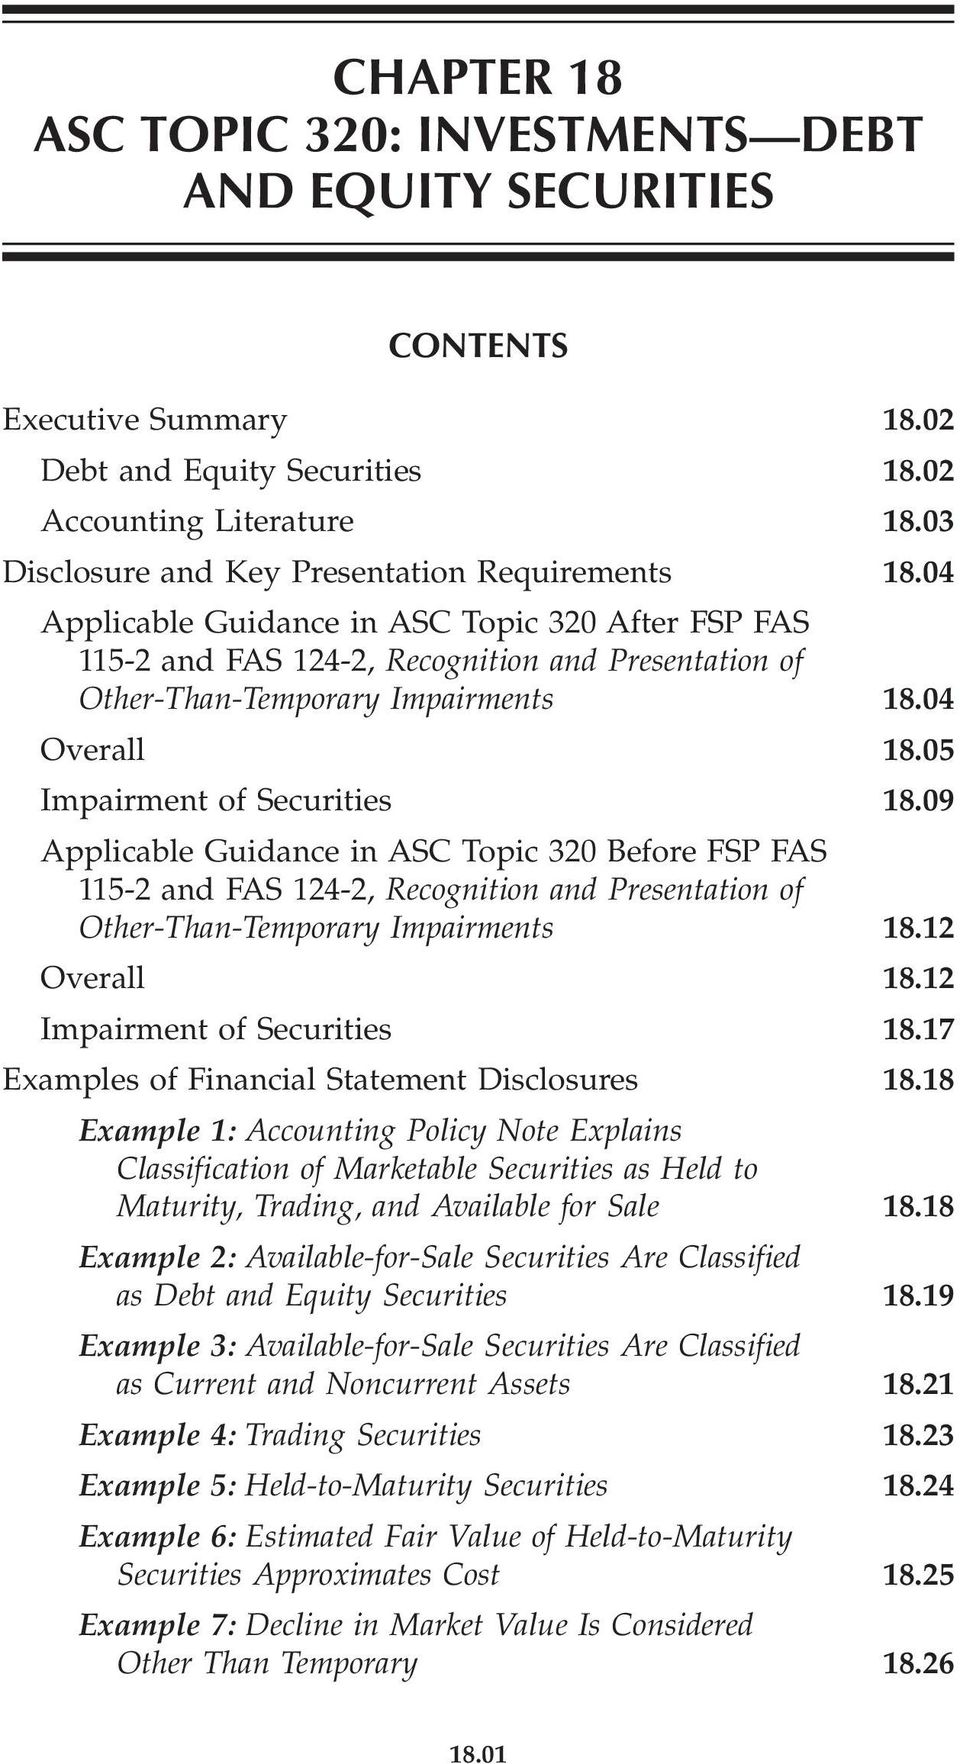 04 Overall 18.05 Impairment of Securities 18.09 Applicable Guidance in ASC Topic 320 Before FSP FAS 115-2 and FAS 124-2, Recognition and Presentation of Other-Than-Temporary Impairments 18.